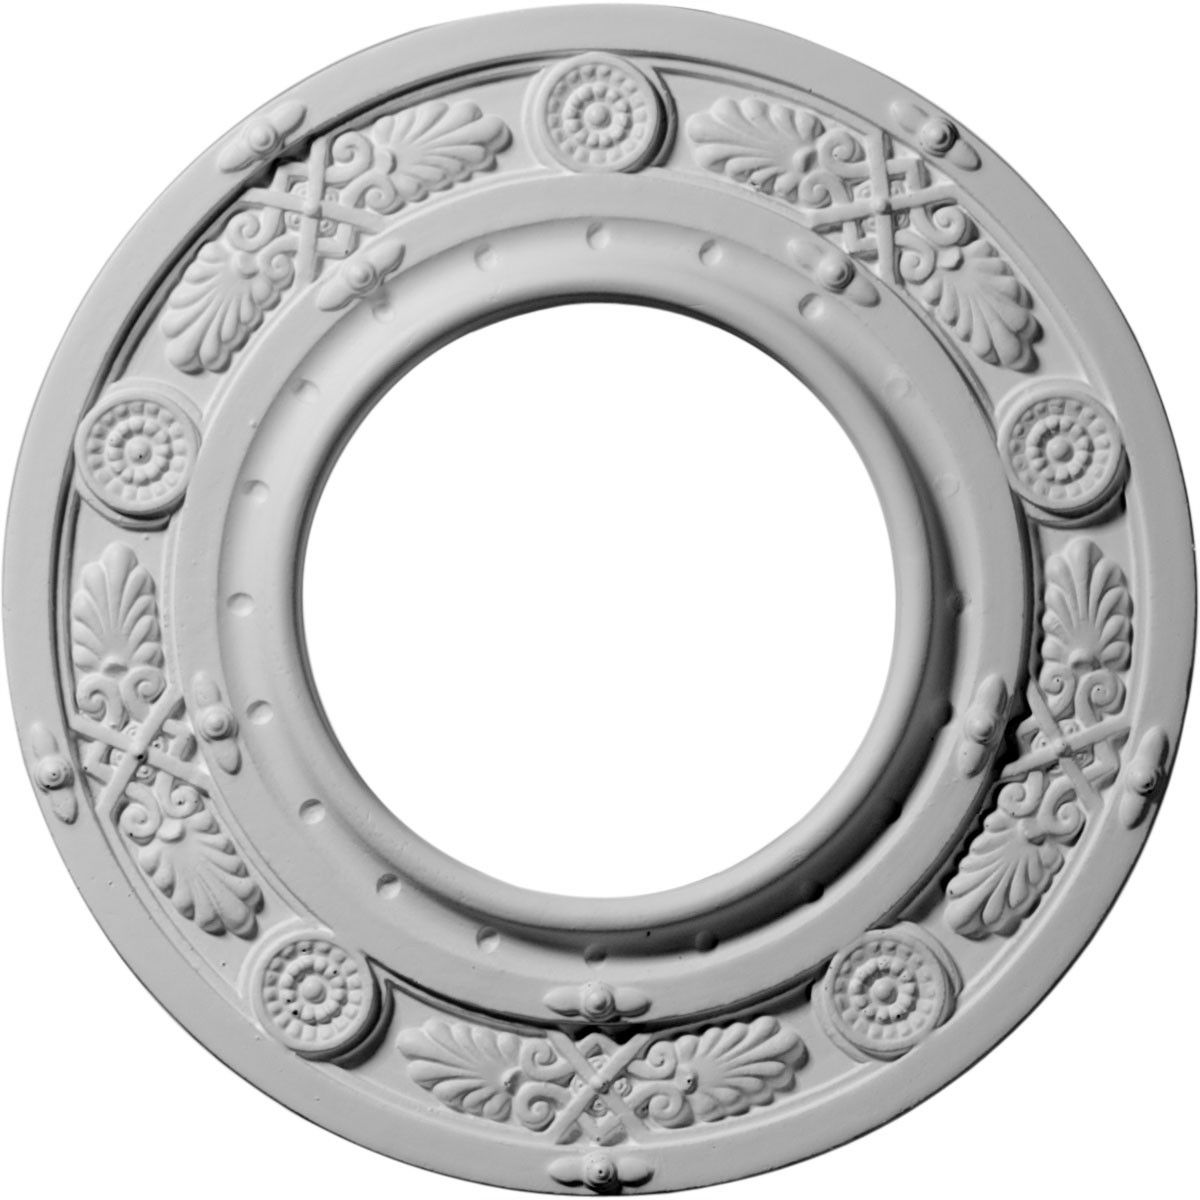 "EM-CM08DN - 8""OD x 3 7/8""ID x 1/2""P Daniela Ceiling Medallion (Fits Canopies up to 3 7/8"")"